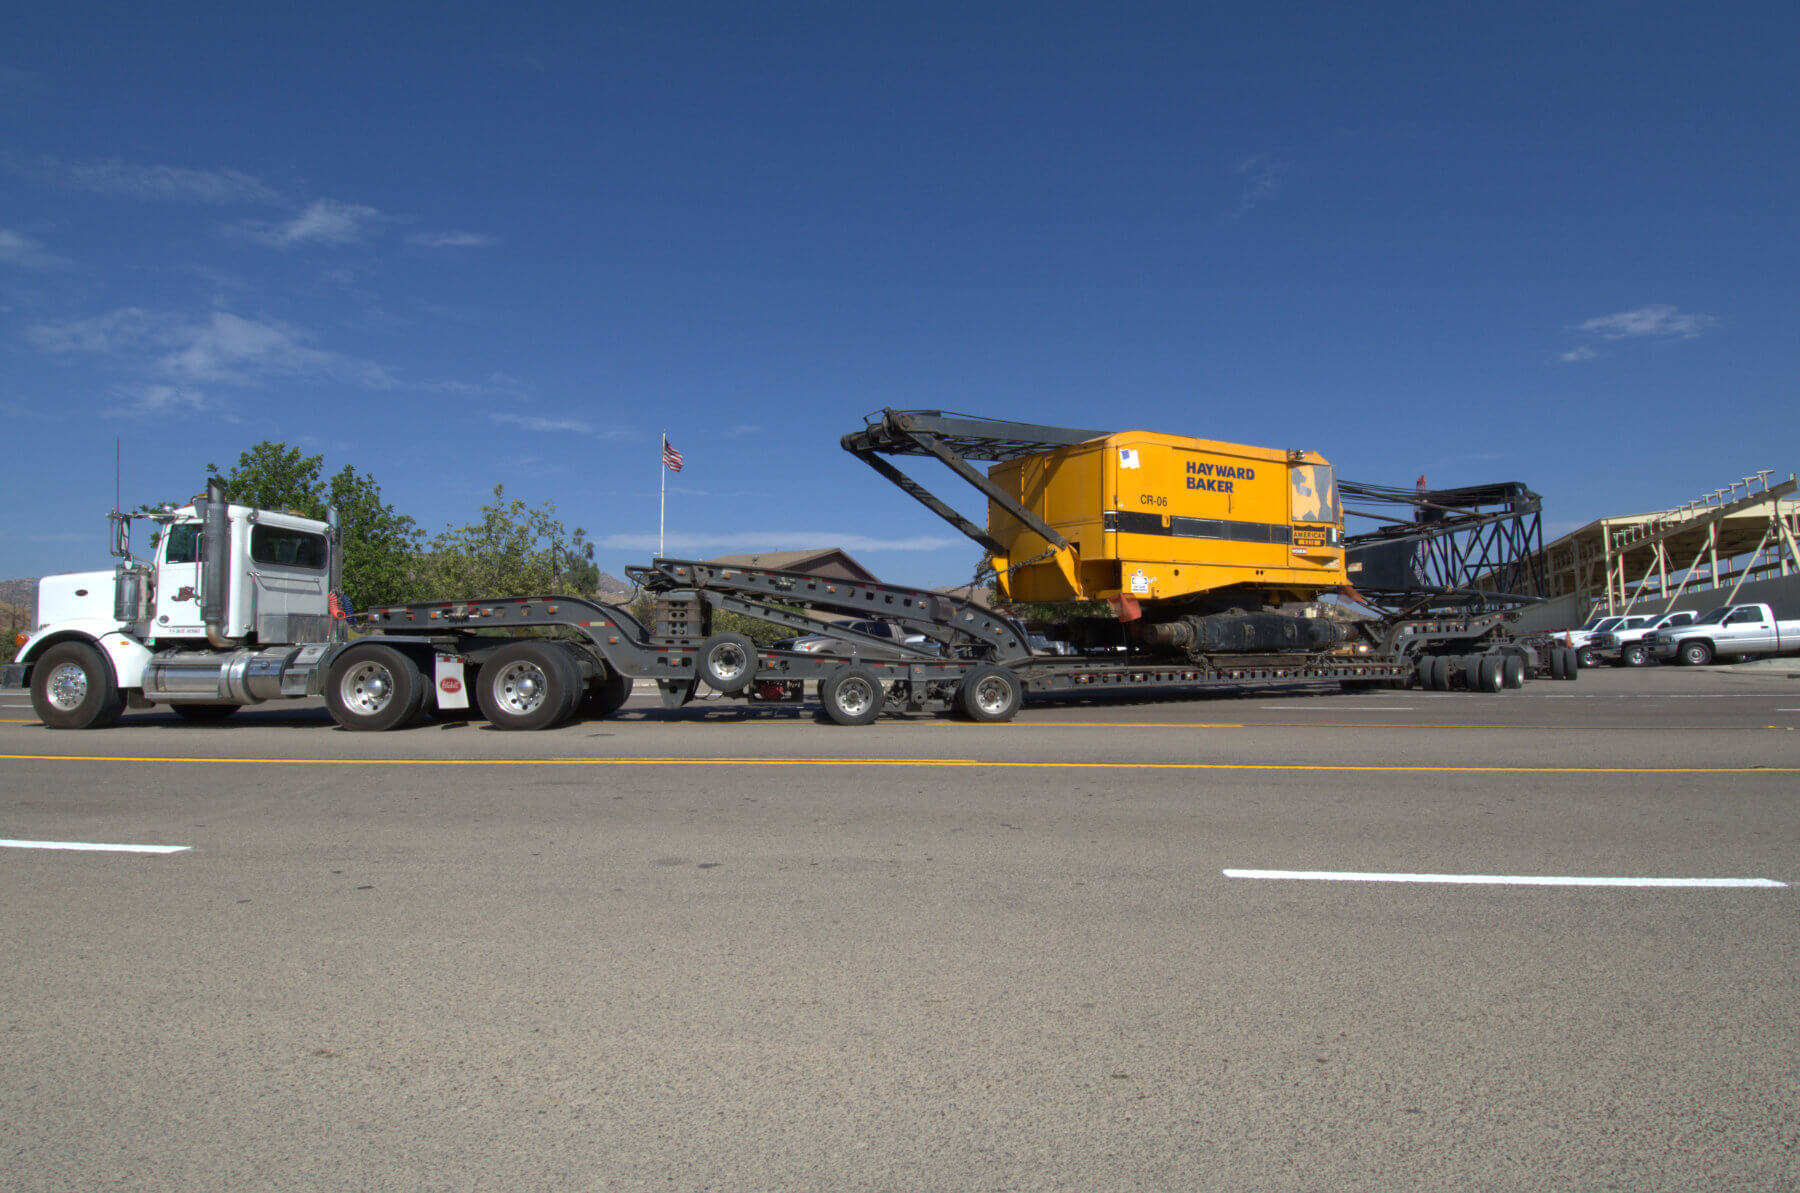 Heavy haul crane